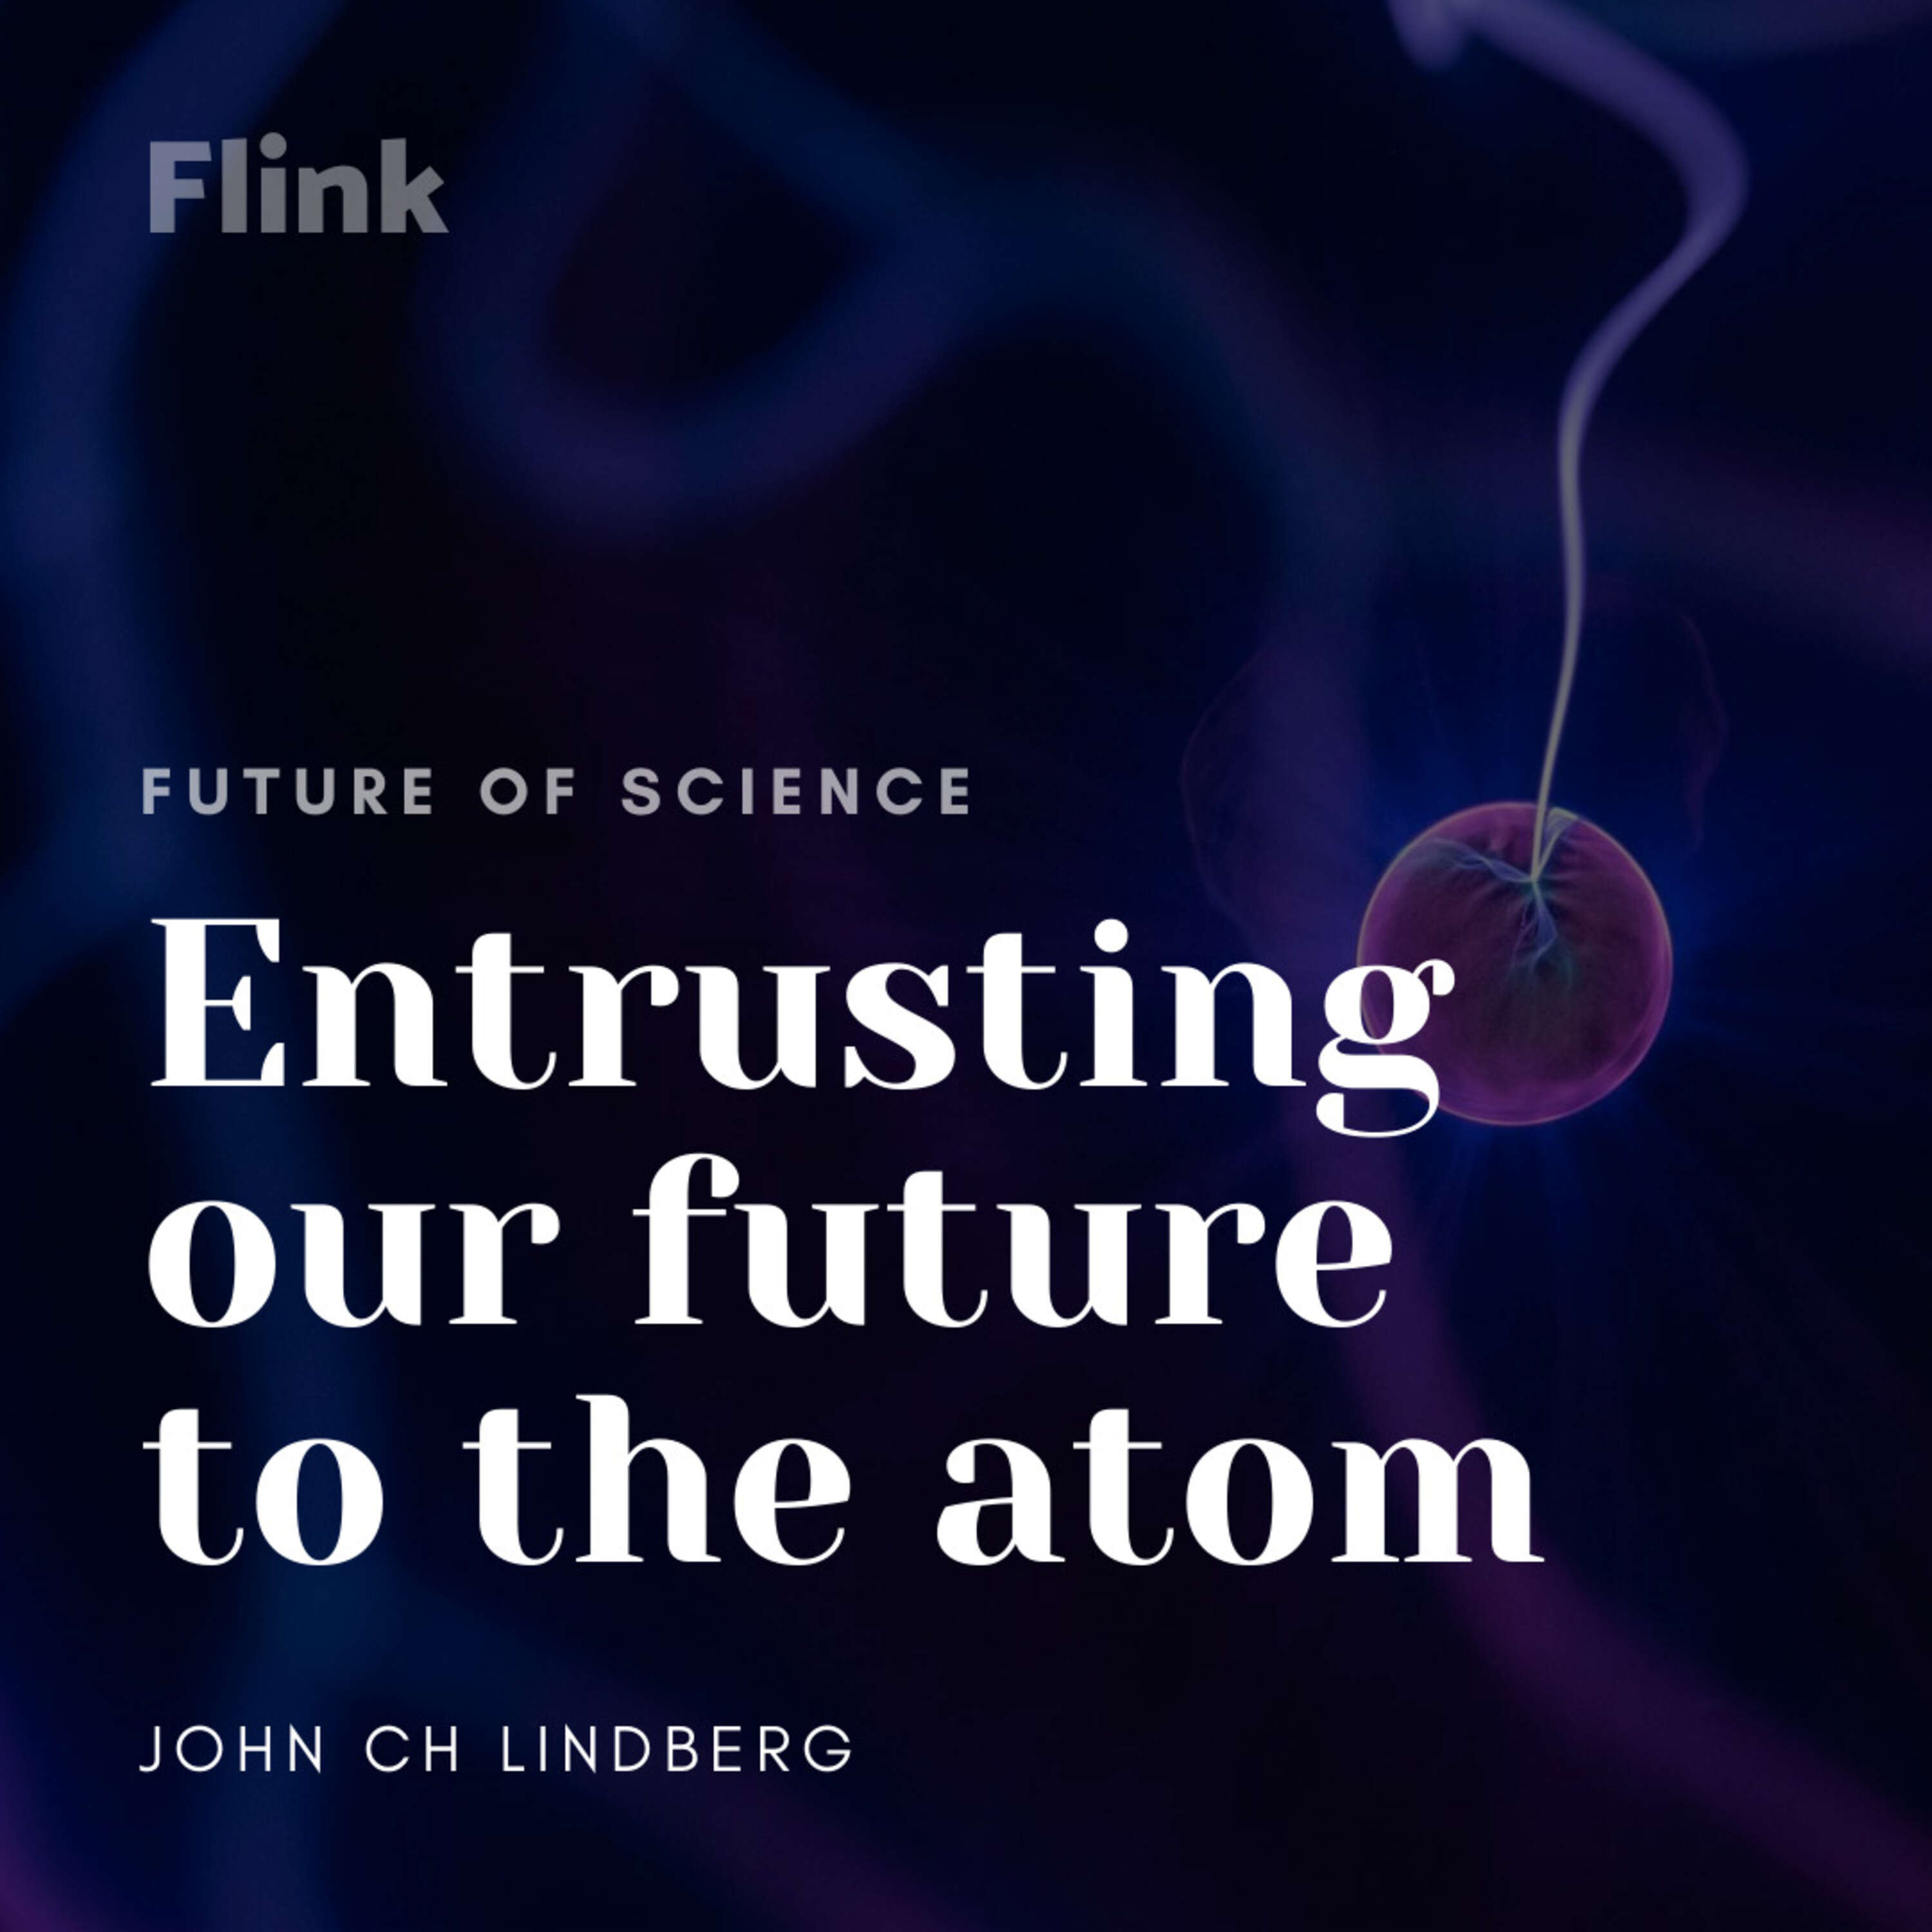 Entrusting our future to the atom